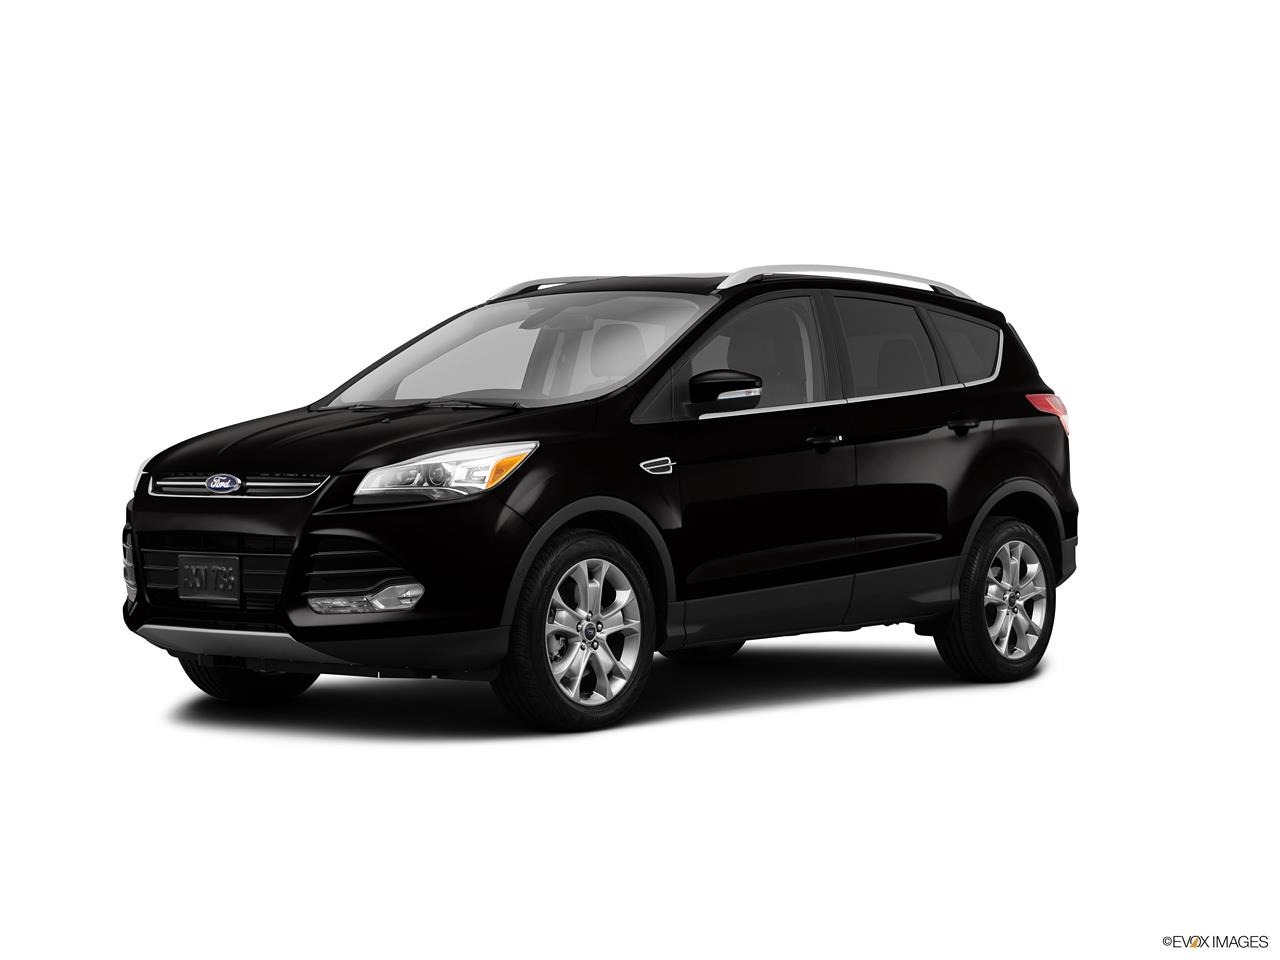 2014 ford escape for sale in murfreesboro tn. Black Bedroom Furniture Sets. Home Design Ideas